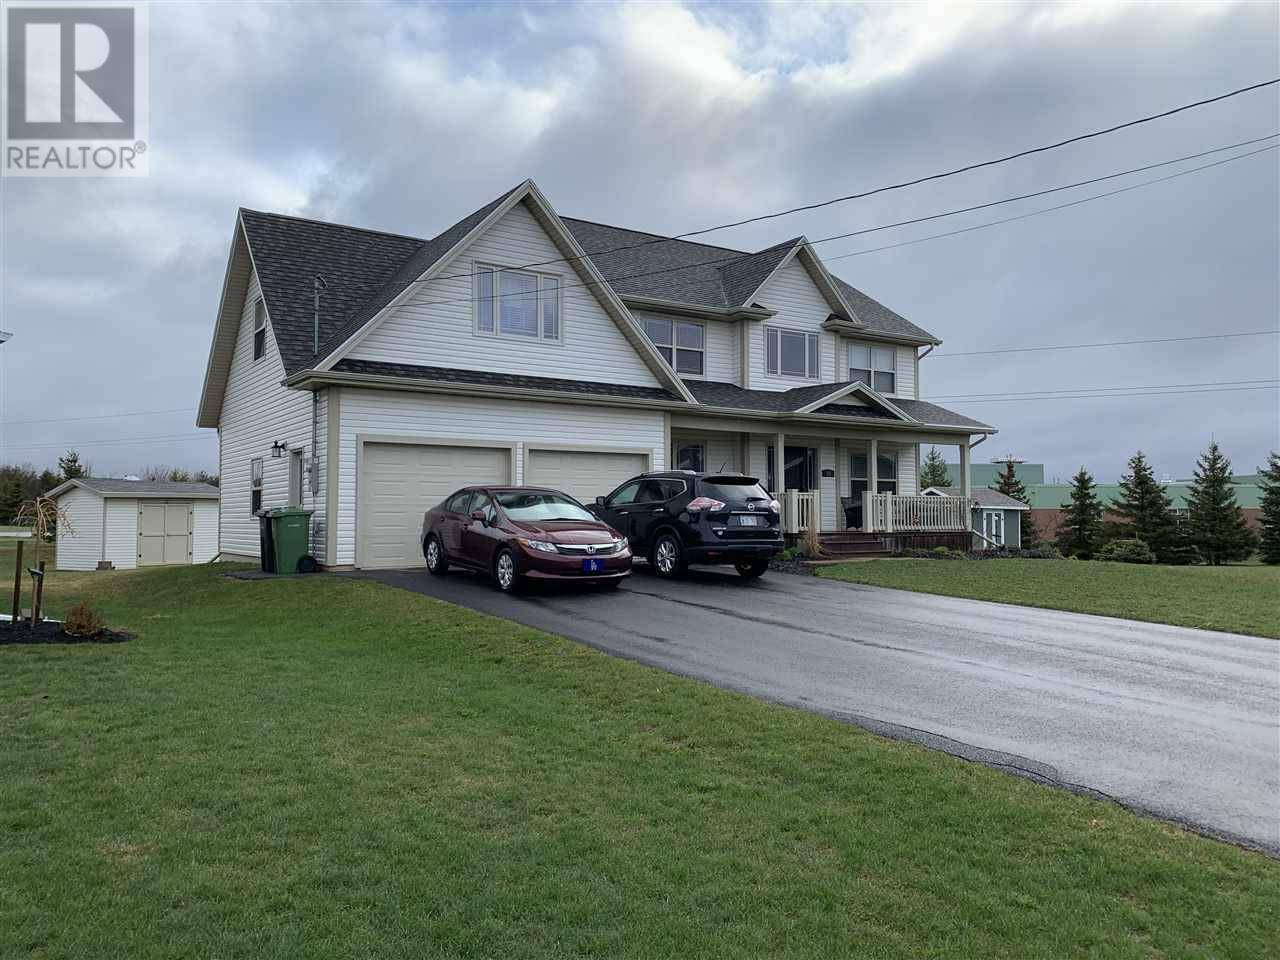 House for sale at 59 Mutch Cres Charlottetown Prince Edward Island - MLS: 202002800